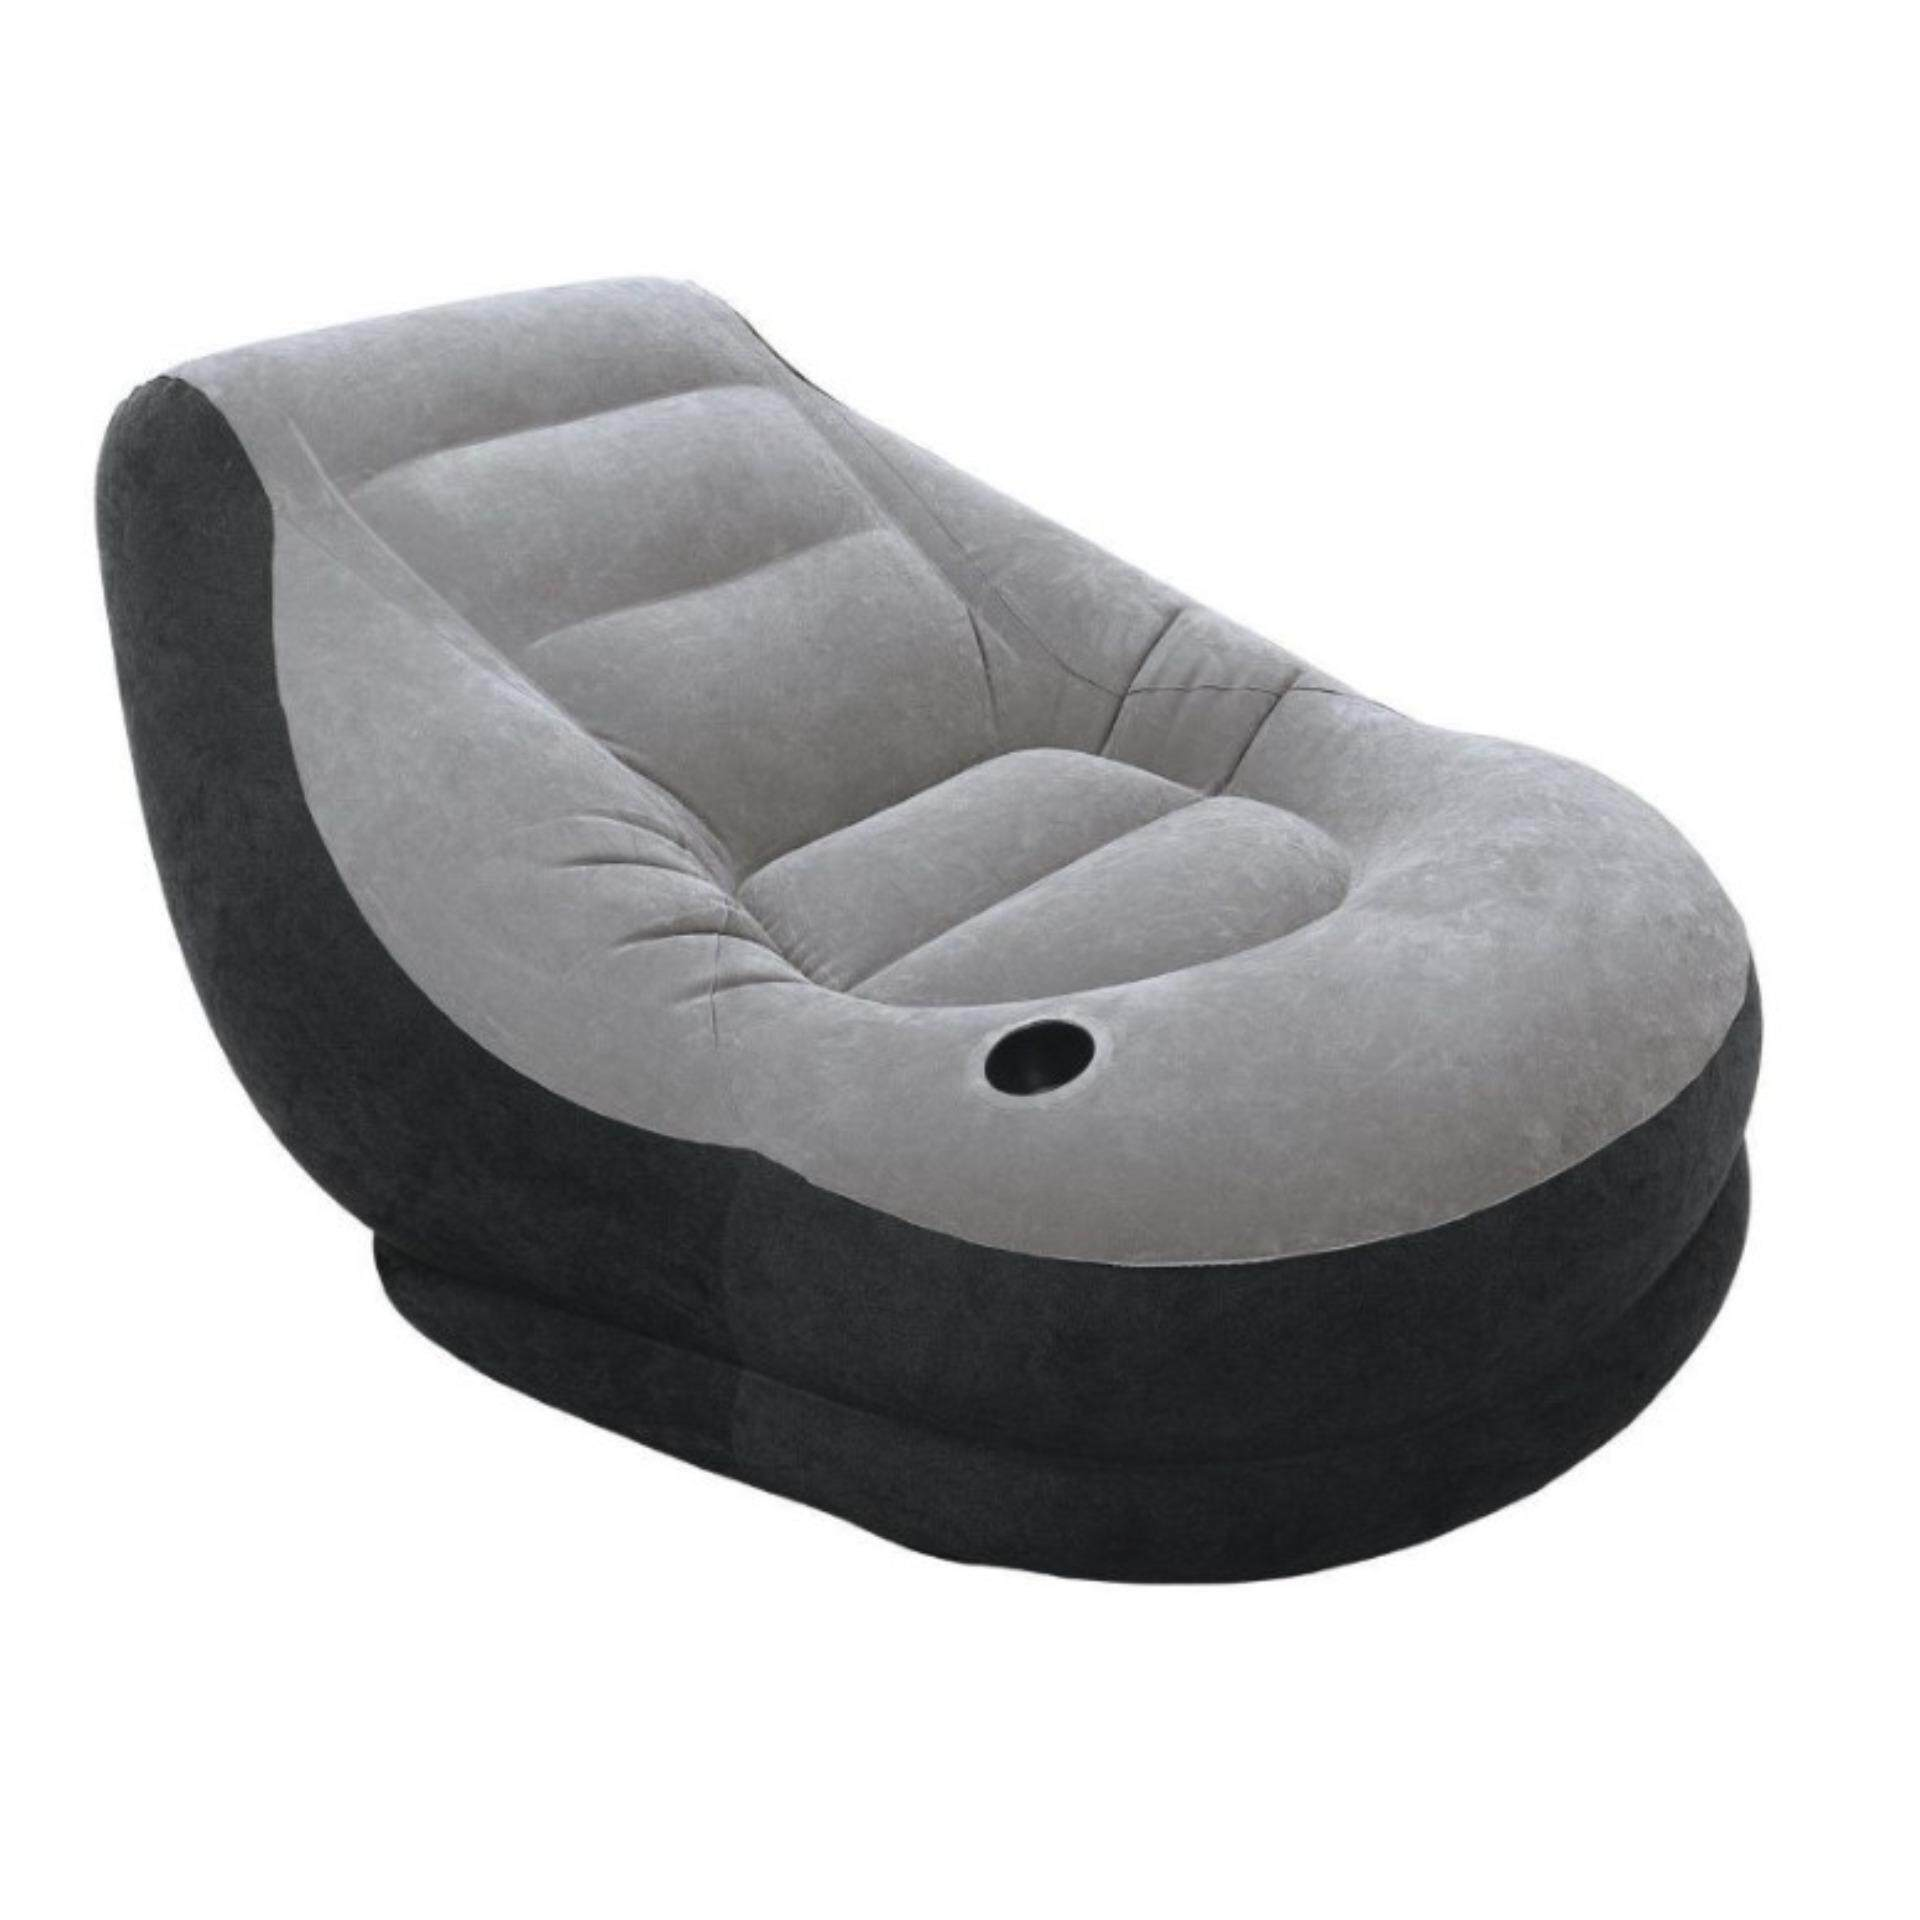 intex sofa chair affordable modern bed lounge inflatable dorm gaming 68564